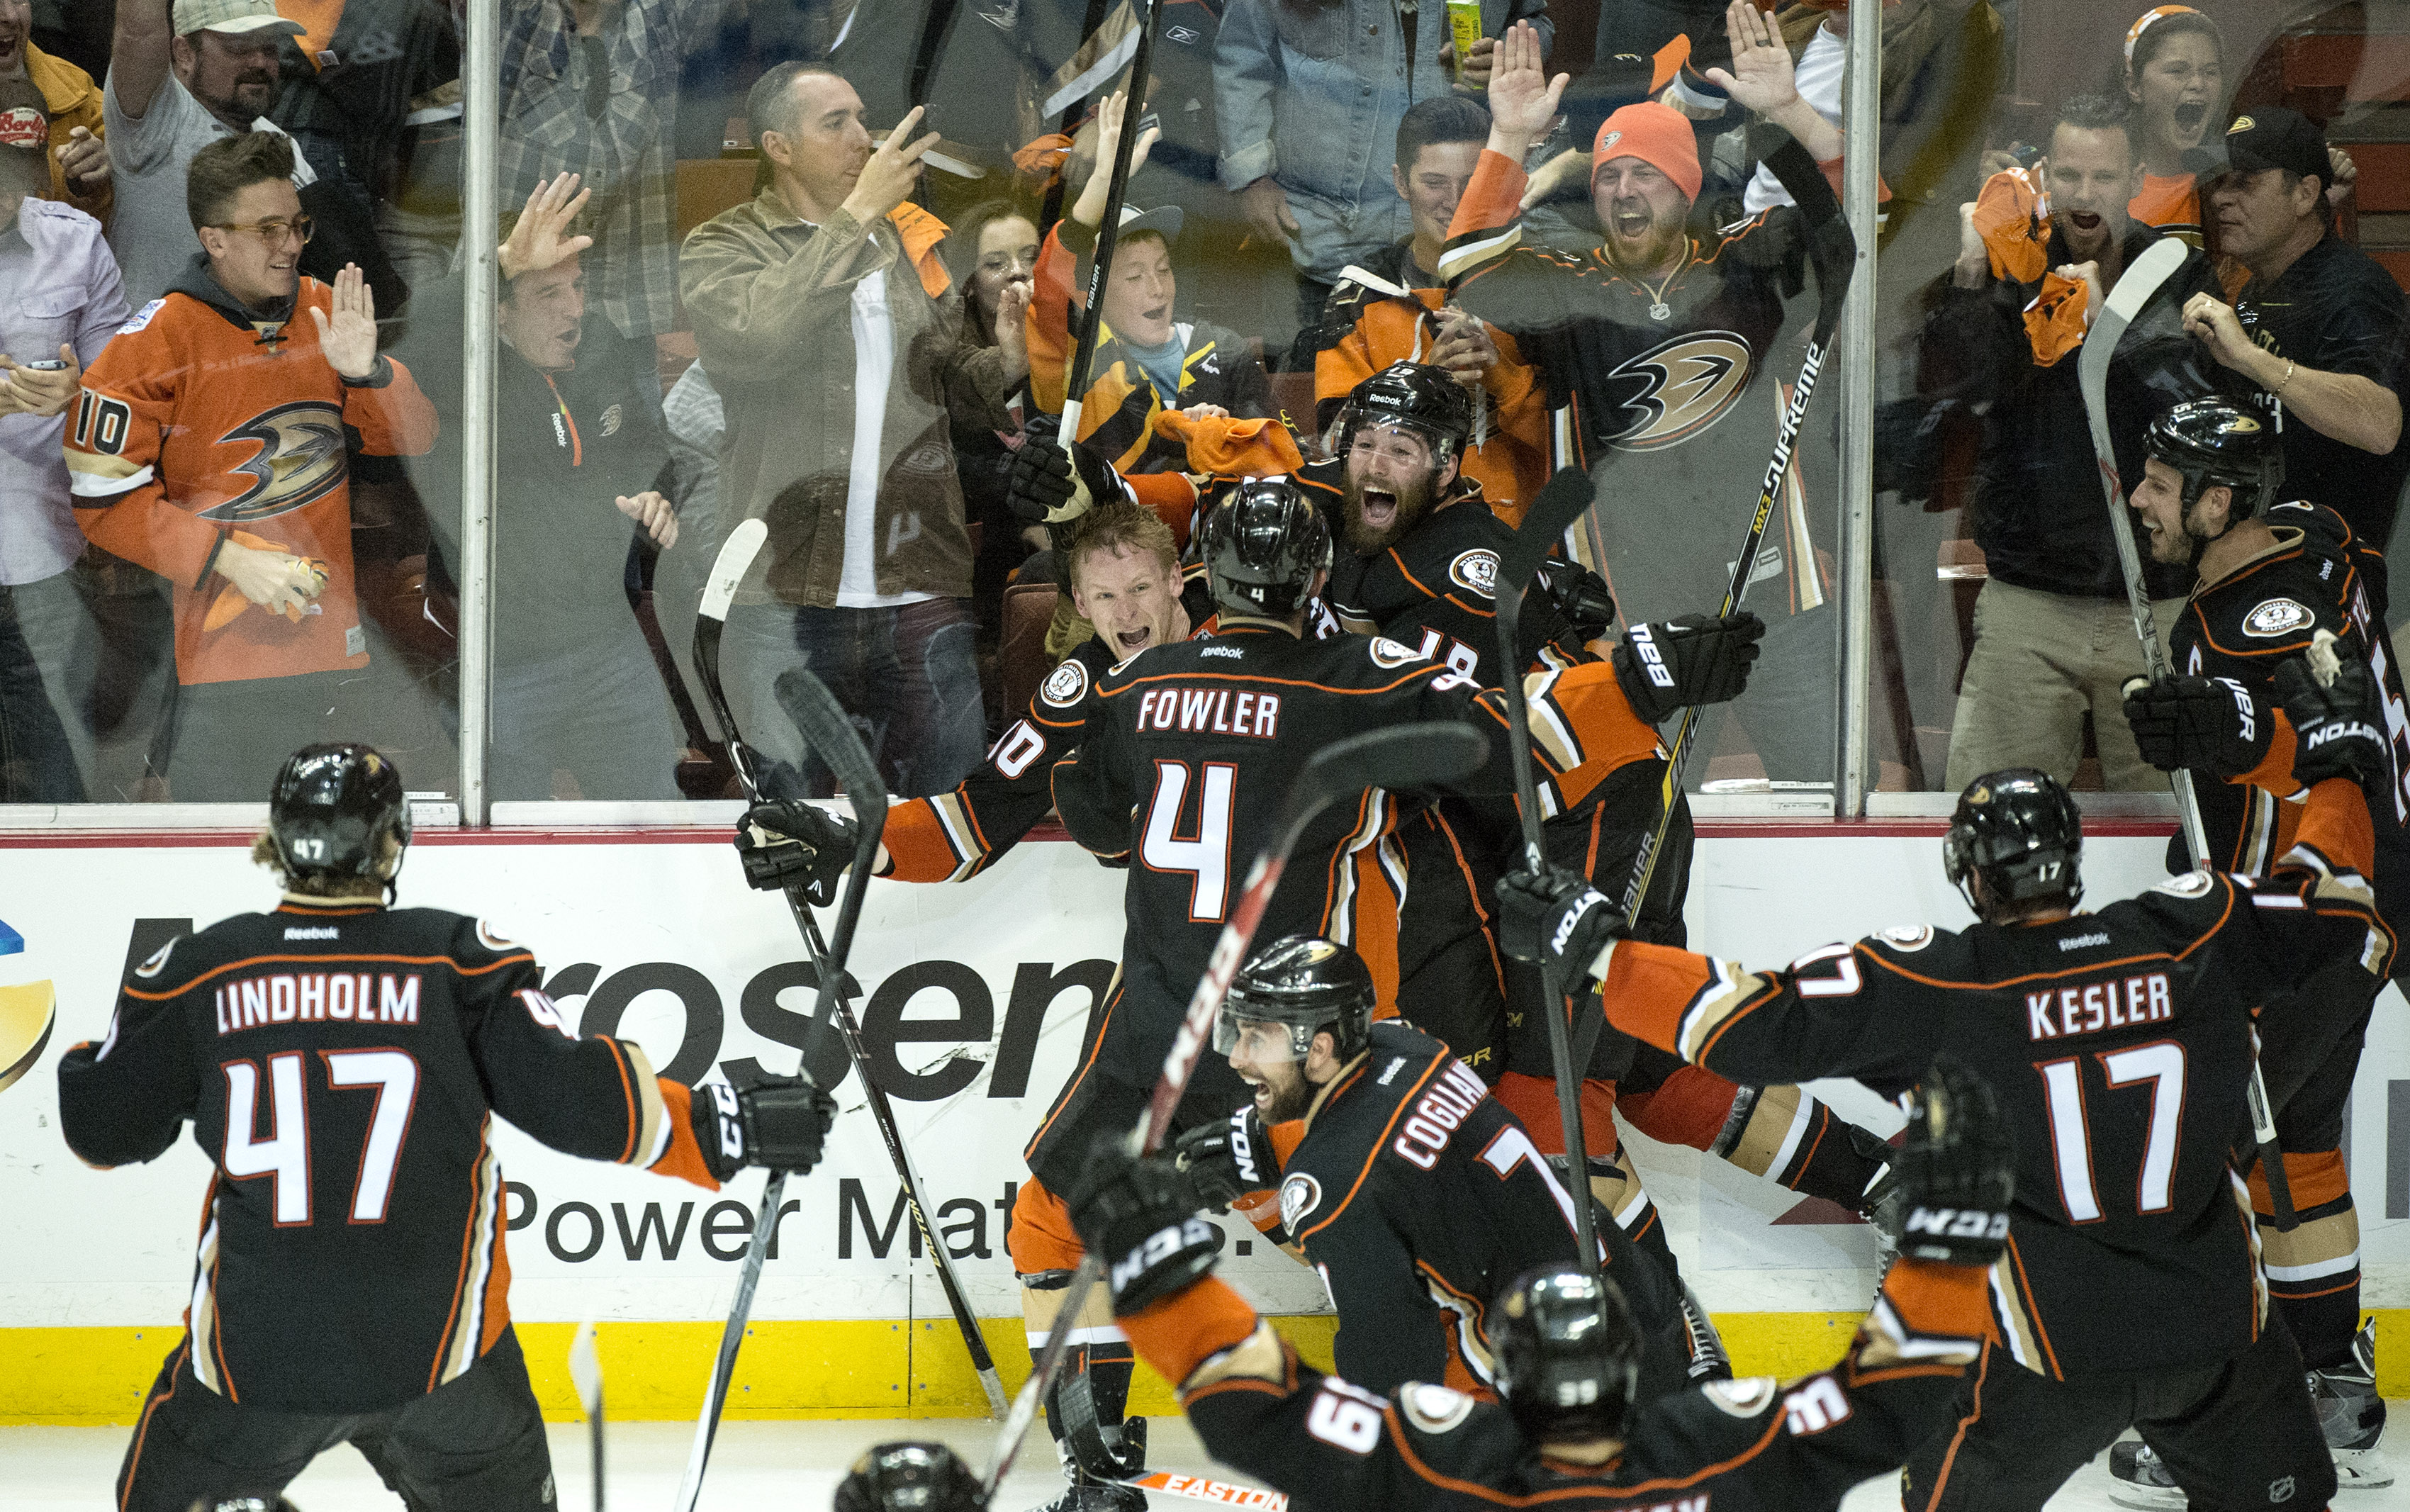 corrects name of the photographerAnaheim Ducks' Corey Perry (10), rear left, celebrates his game-winning goal for a 3-2 overtime win against Calgary in Game 5 of a second-round series in the NHL hockey playoffs in Anaheim, Calif., Sunday, May 10, 2015.  A